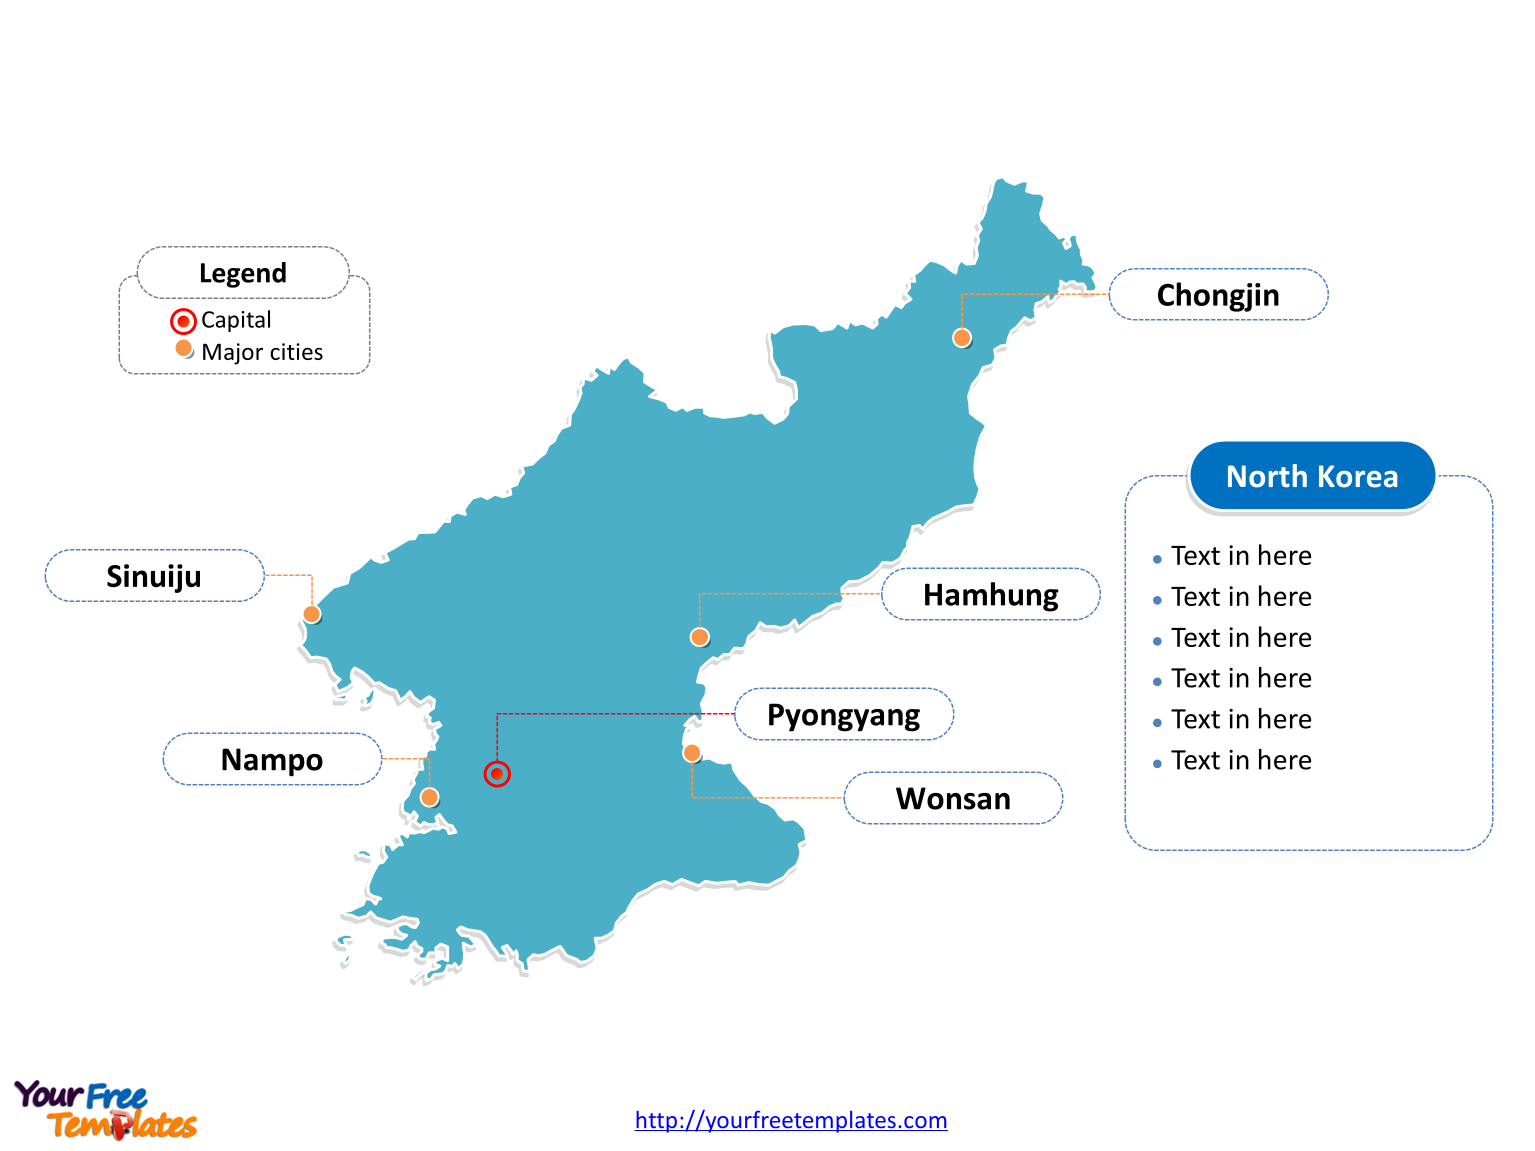 North Korea Outline map labeled with cities